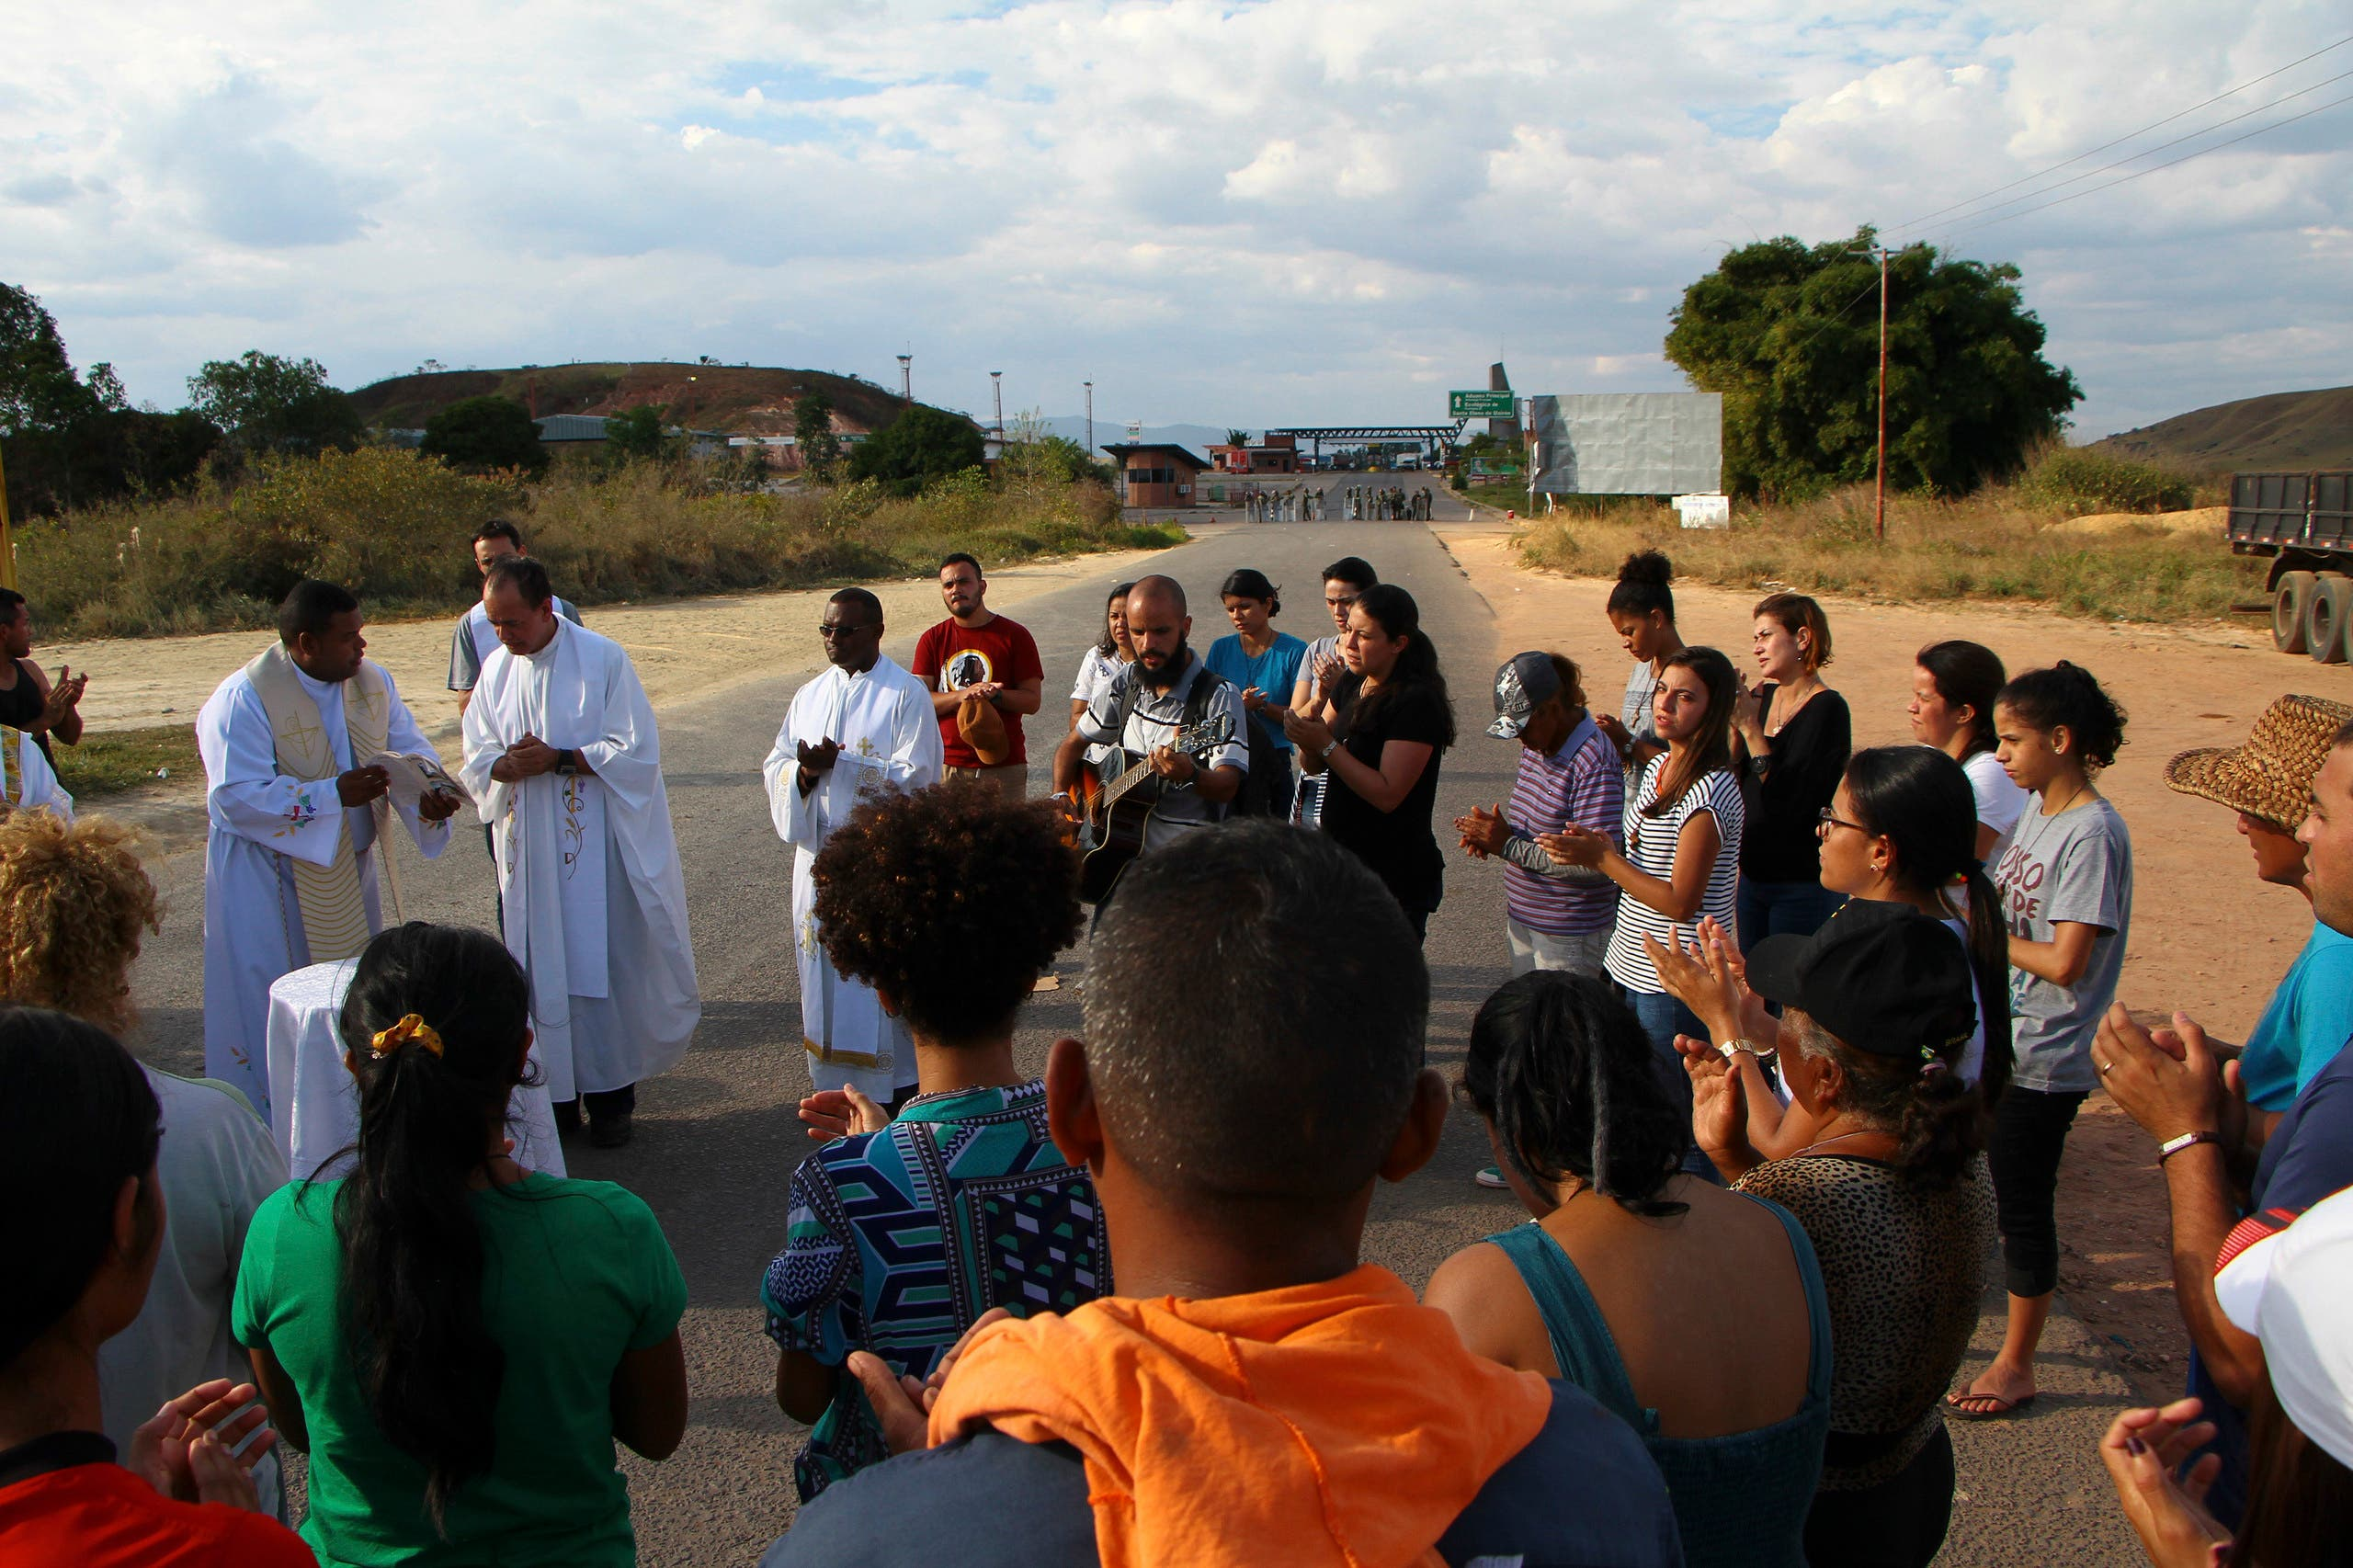 Venezuelans and Brazilians attend a Mass conducted by Venezuelan priests, next to a border checkpoint in Pacaraima, Roraima state, Brazil, Friday, Feb.22, 2019. Heightened tensions in Venezuela left a woman dead and a dozen injured near the border with Brazil on Friday, in the first deadly clash over the opposition's attempts to bring in emergency food and medicine that President Nicolas Maduro says isn't needed and has vowed to block (AP)